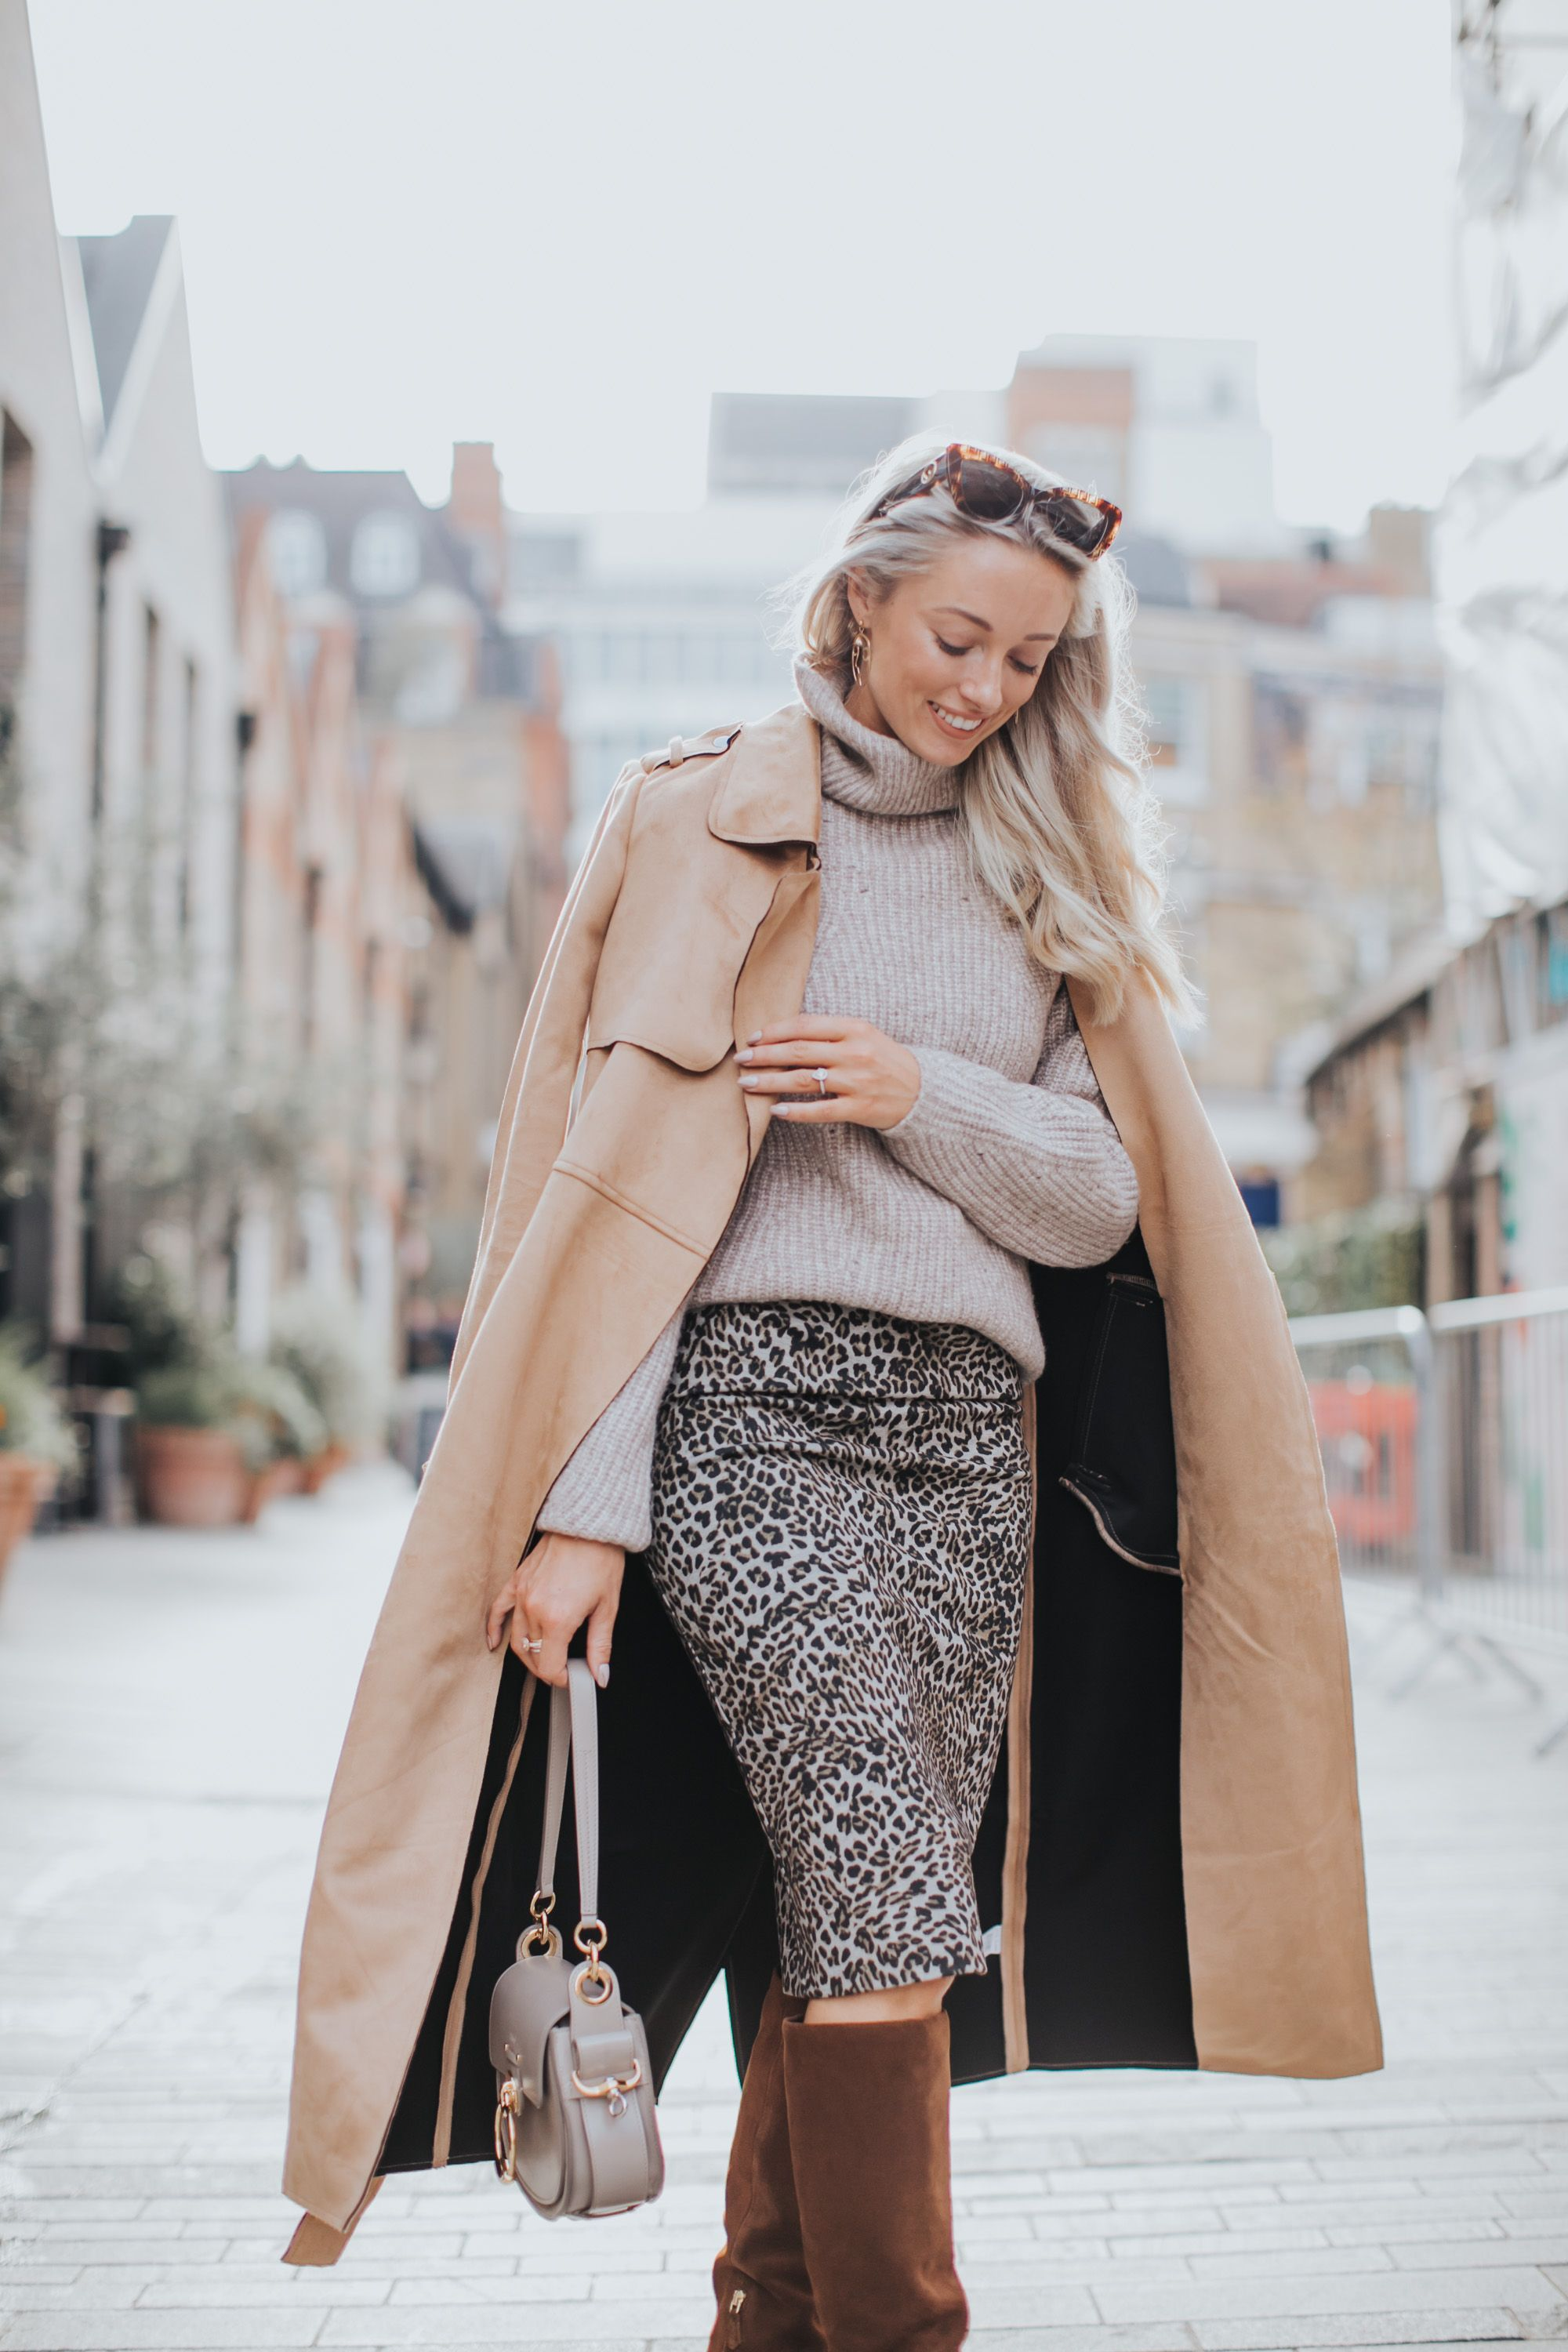 Coat  River Island  Skirt  River Island  Bag  Chloé  Jumper  River Island  Boots  LK Bennett similar but more affordable This time of year always presents a little...